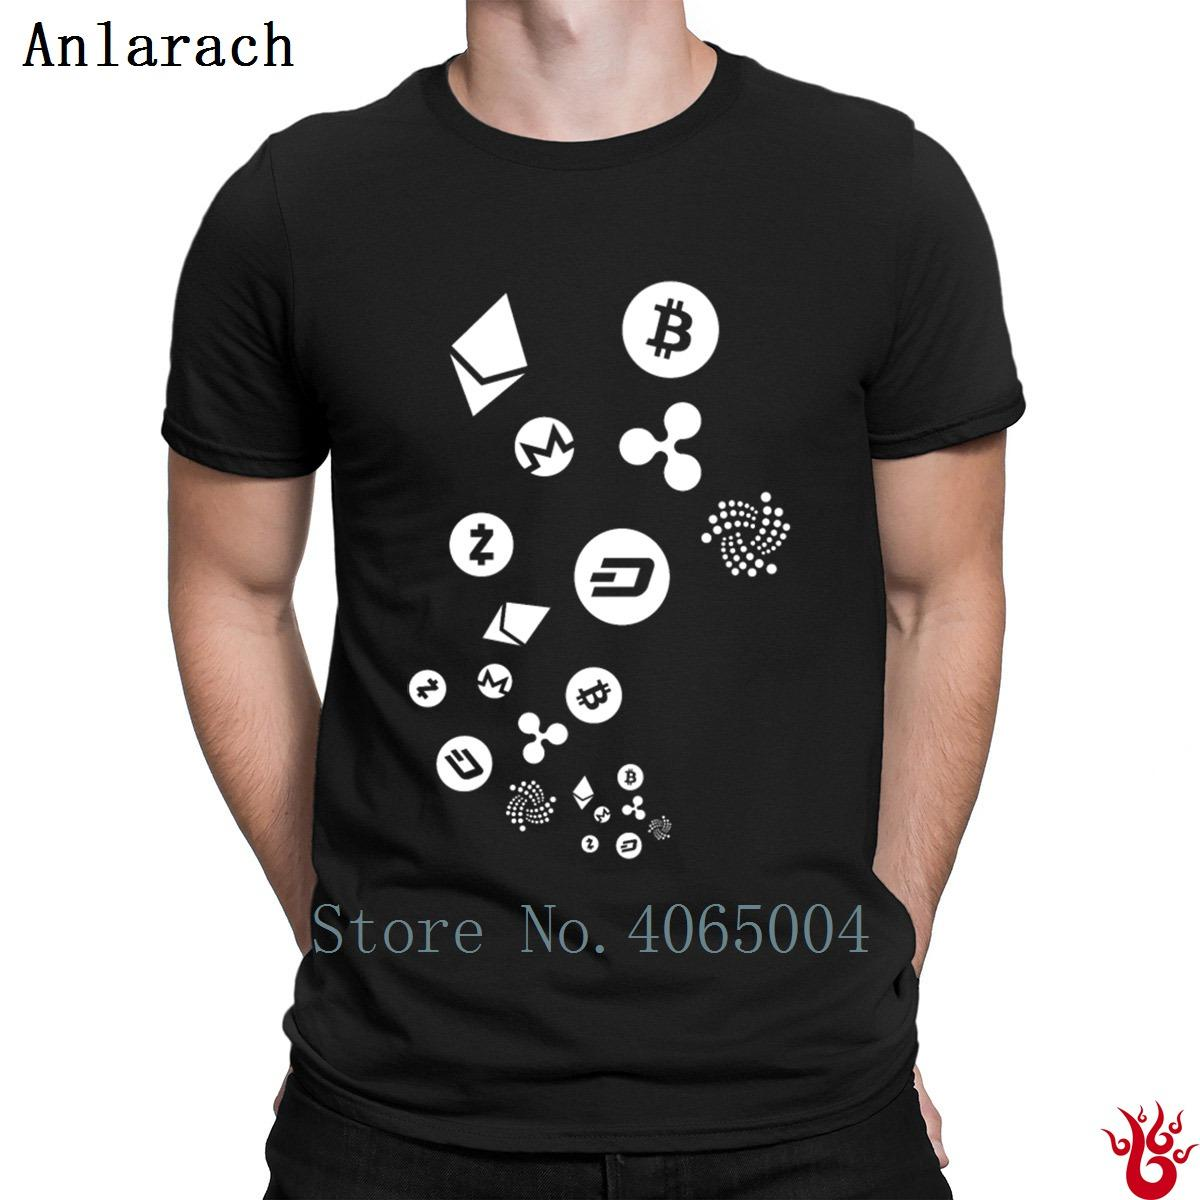 8c7fa30a Cryptocurrency Tshirts Cotton Outfit Hiphop Tops Natural Men's T Shirt 2018  New Fashion Customized Loose Plus Size 3xl